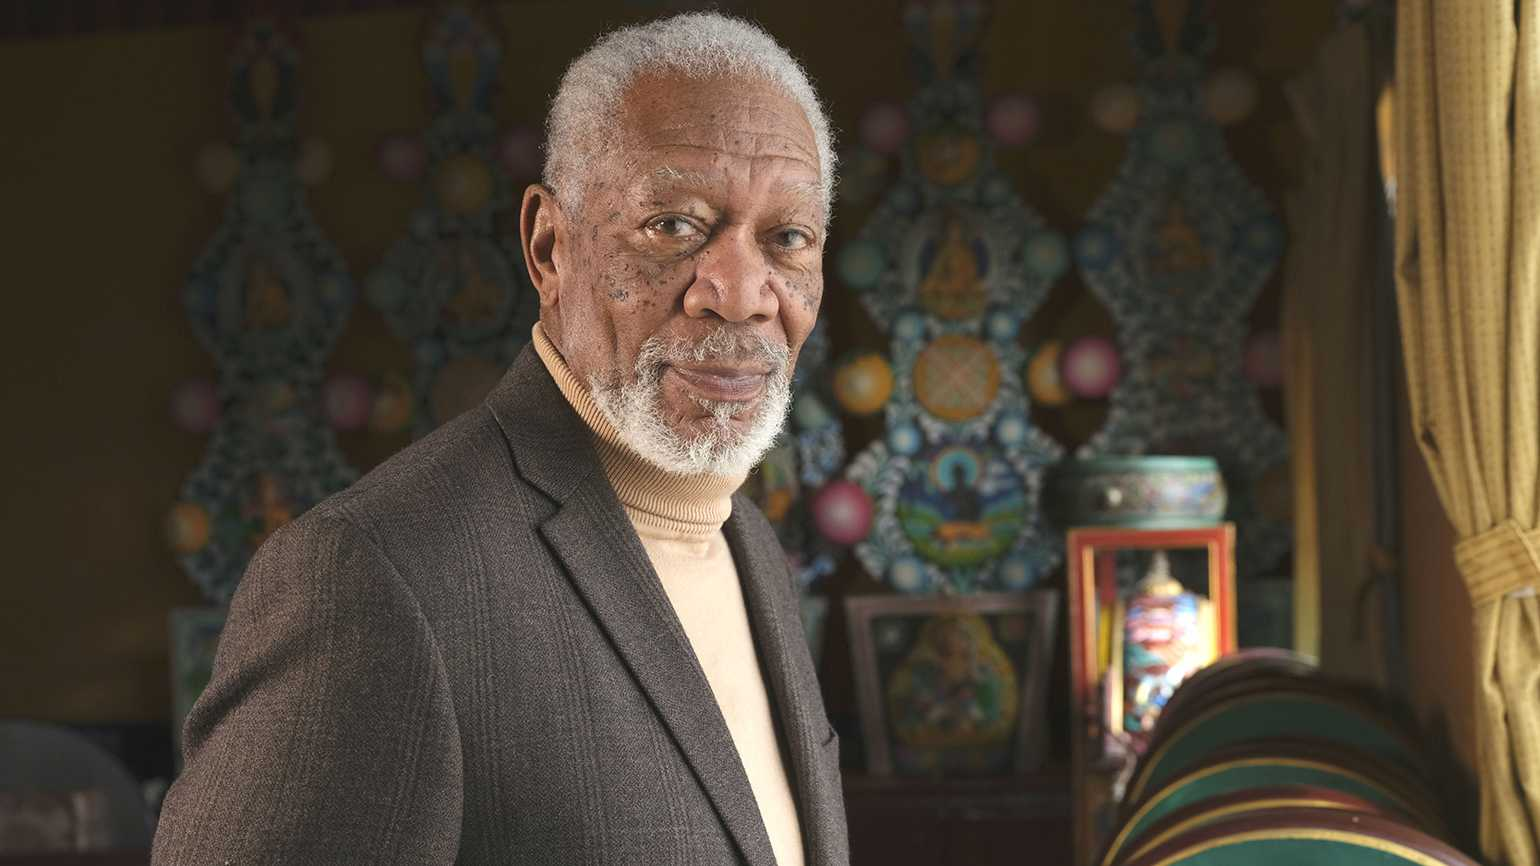 Morgan Freeman Explores Visions of Faith in 'The Story of God'